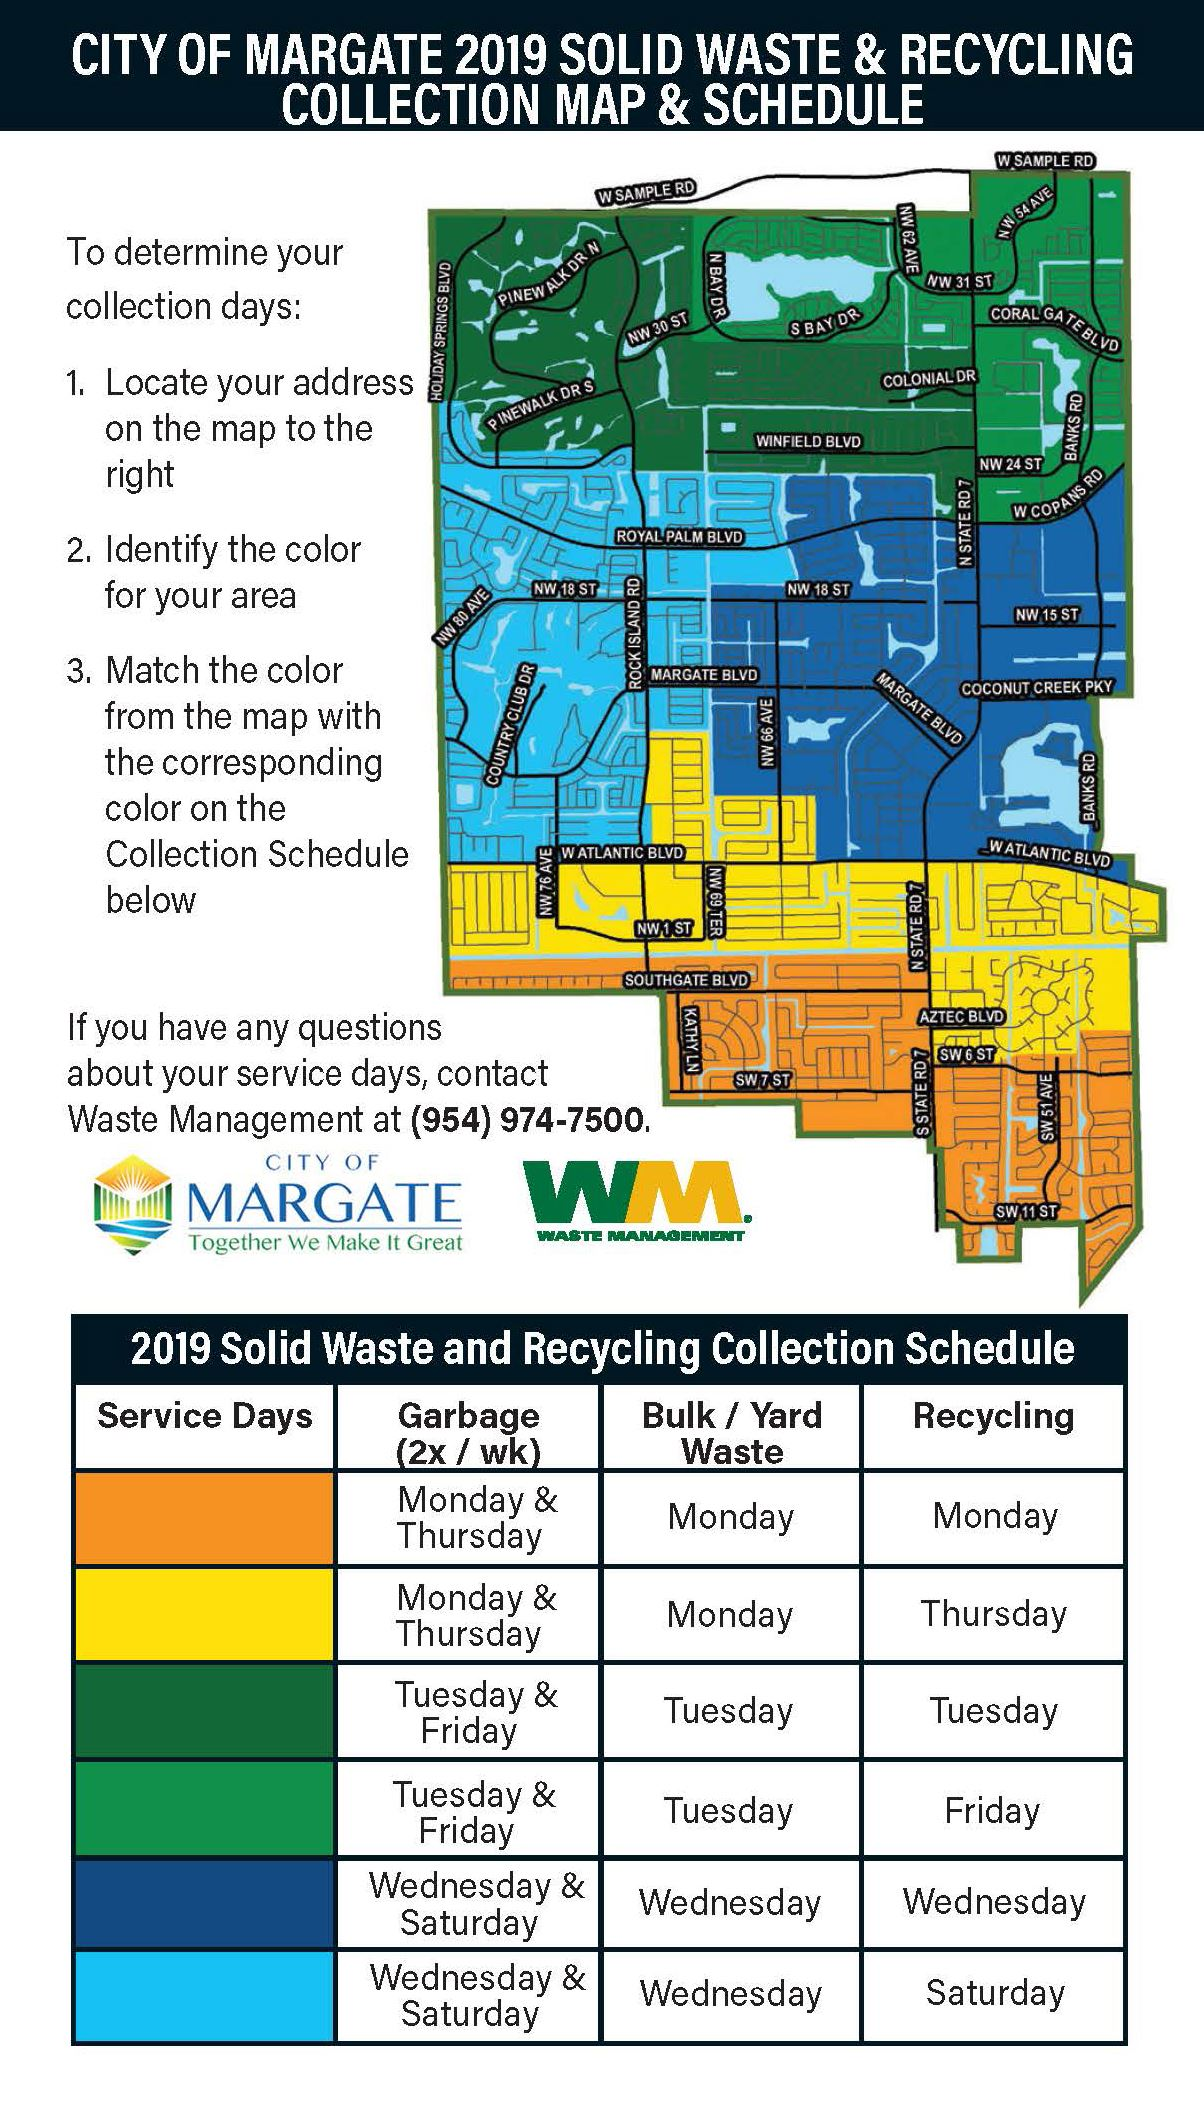 Waste Management Yard Waste Pickup Schedule 2019 Bulk / Yard Waste | Margate, FL